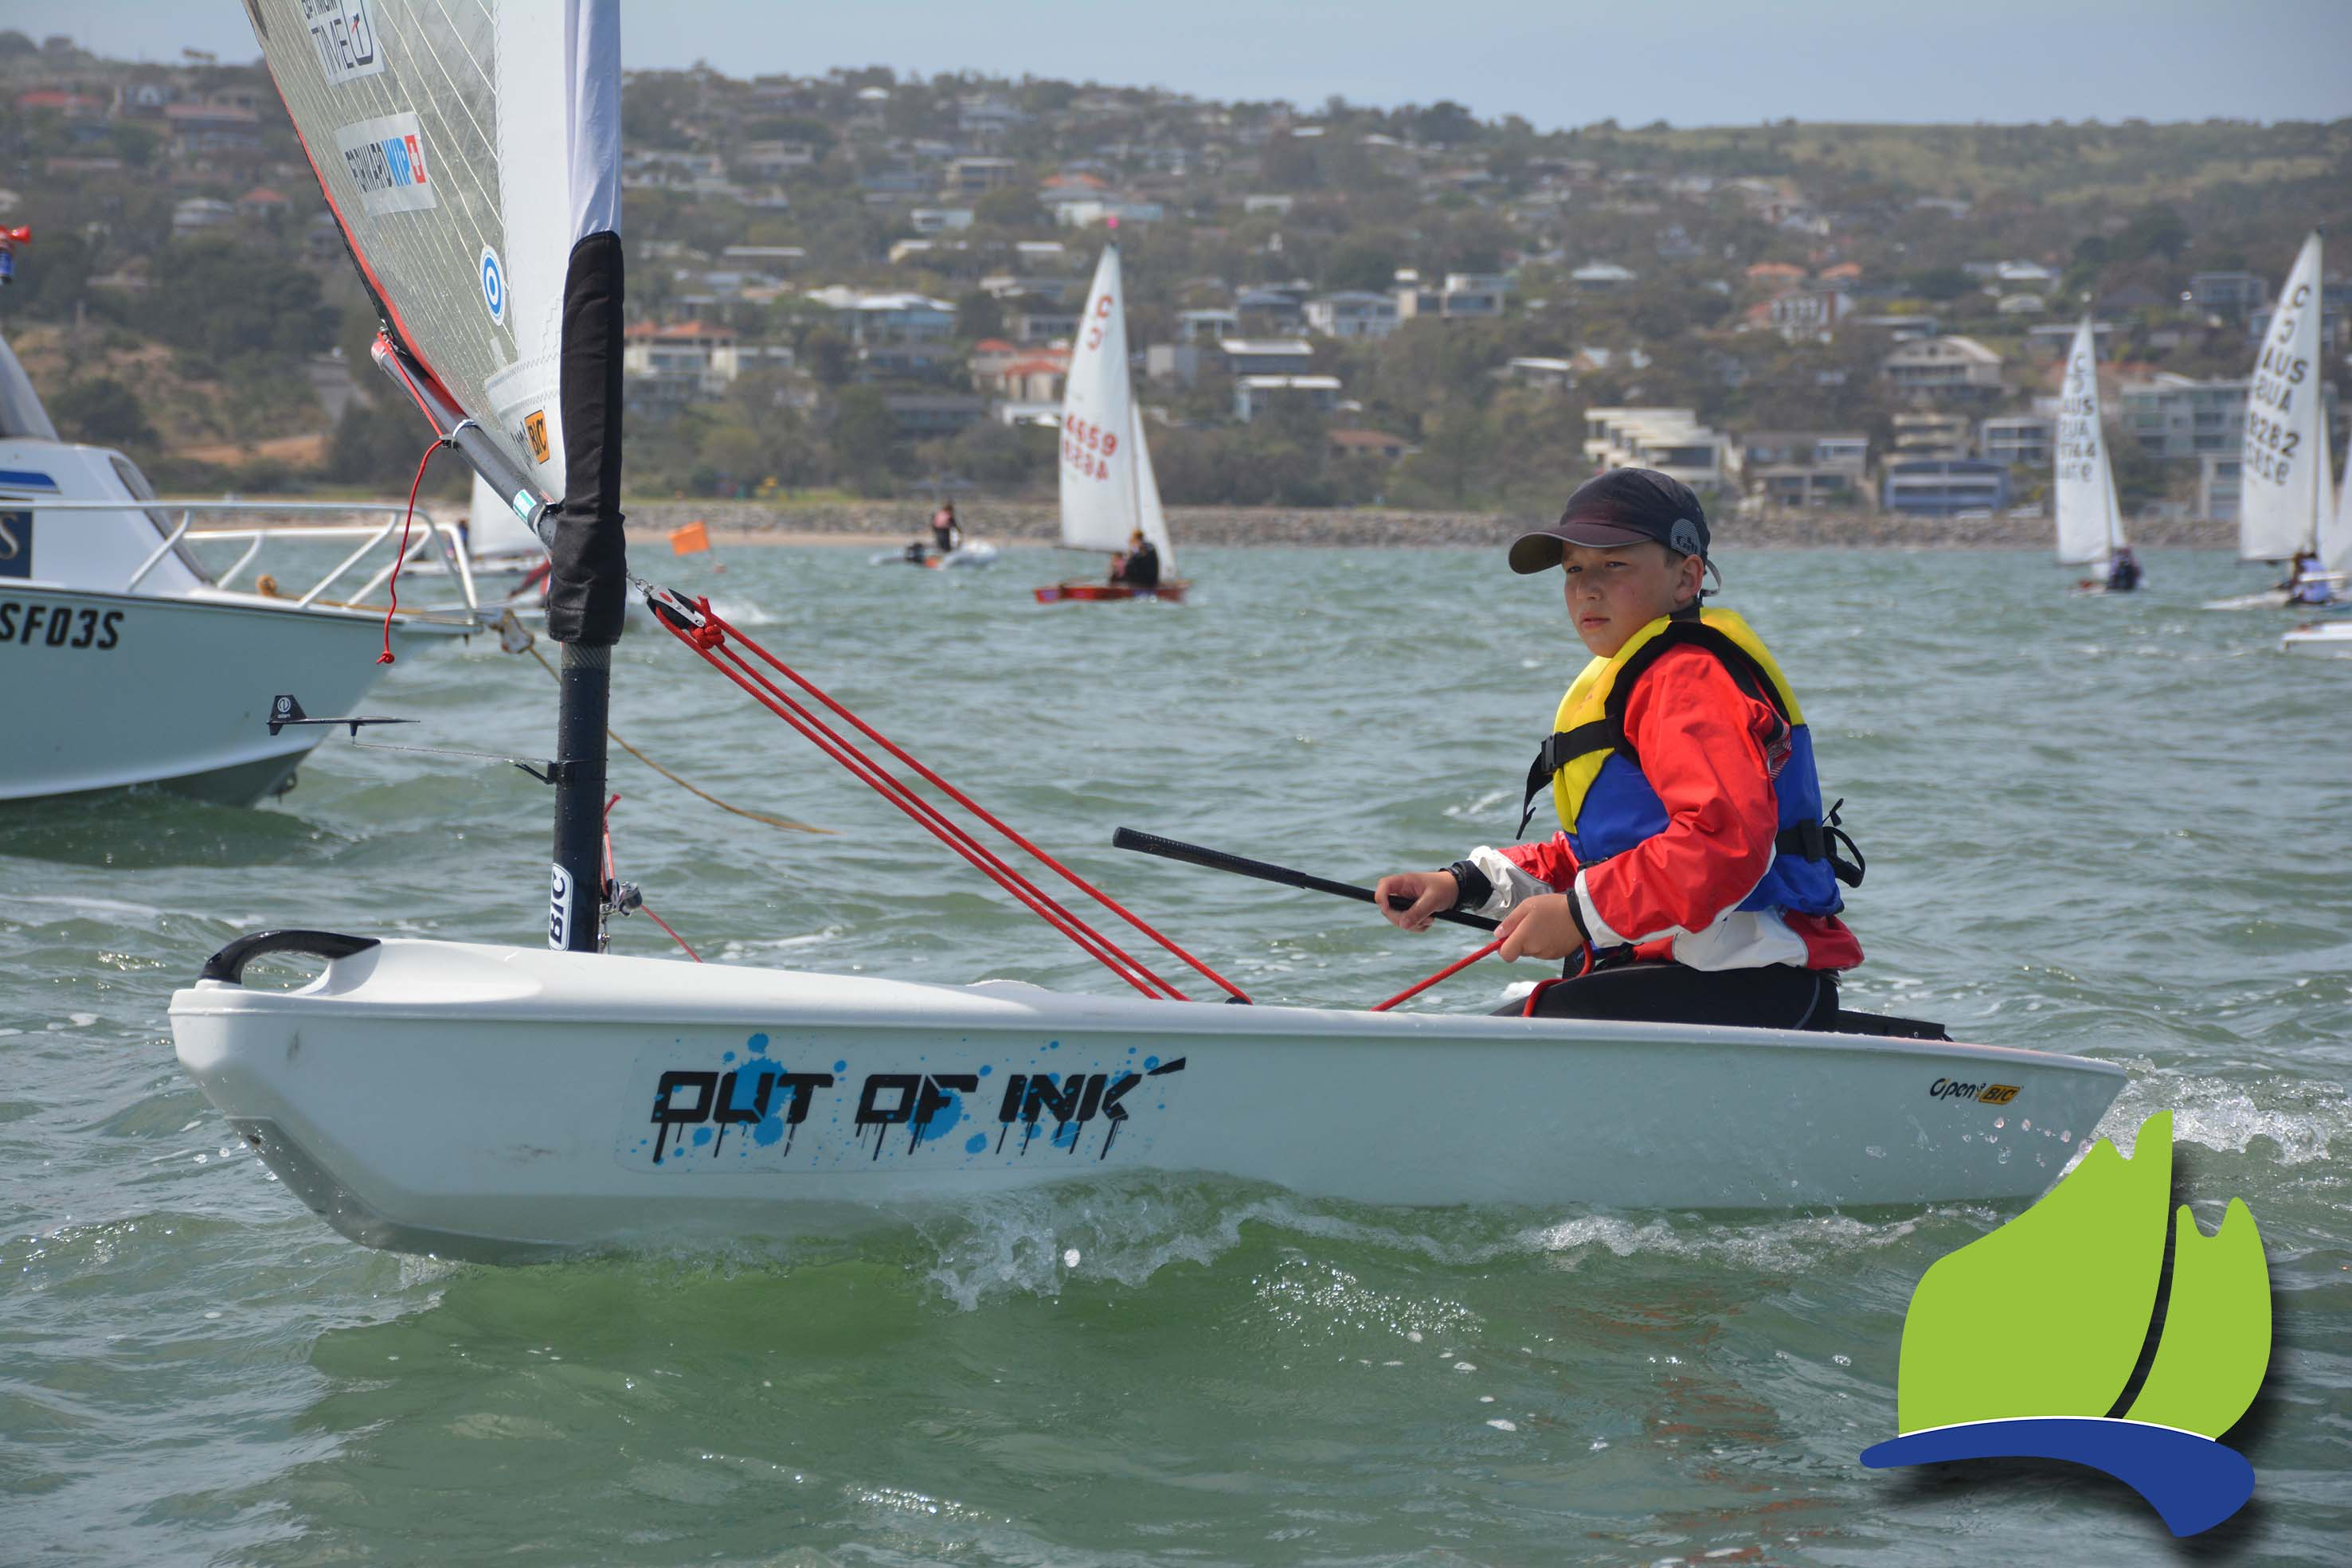 Adelaide's Alexander Lebedev sailing in the Open Bic at the recent Tri Series event.